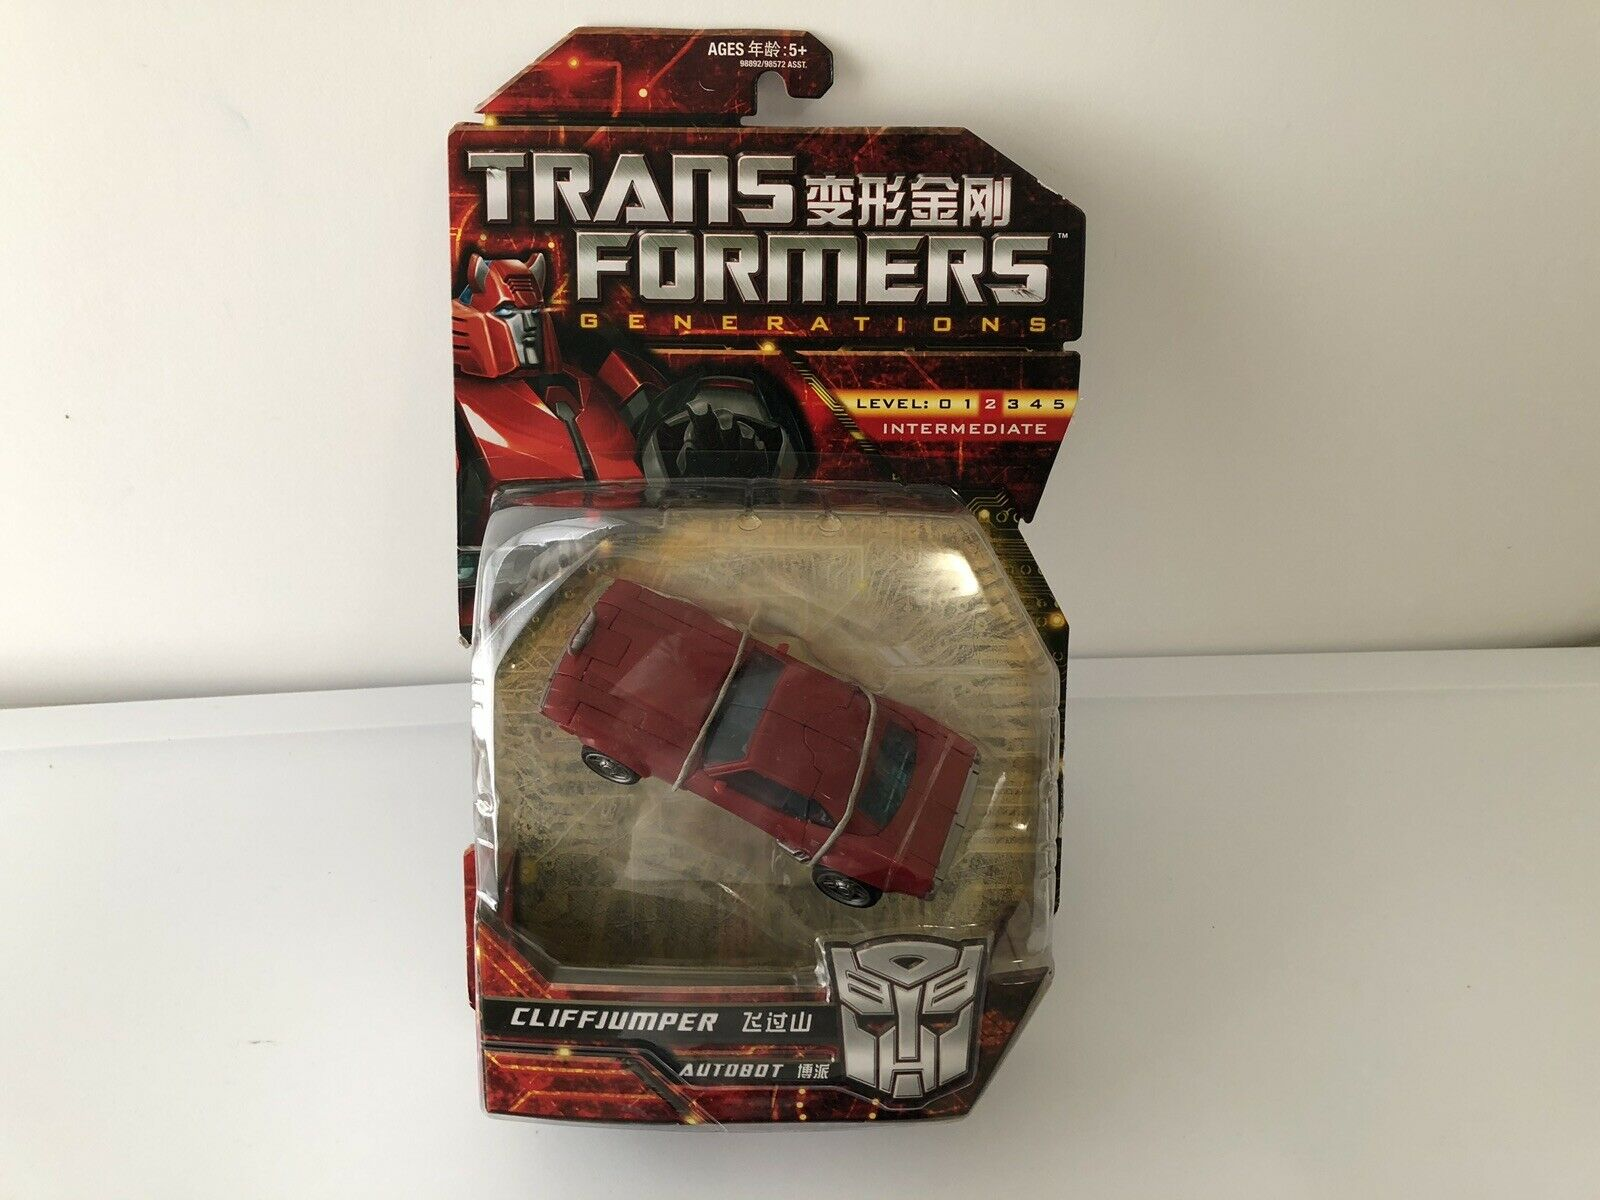 Transformers Generations GDO Cliffjumper Deluxe Class NEUF